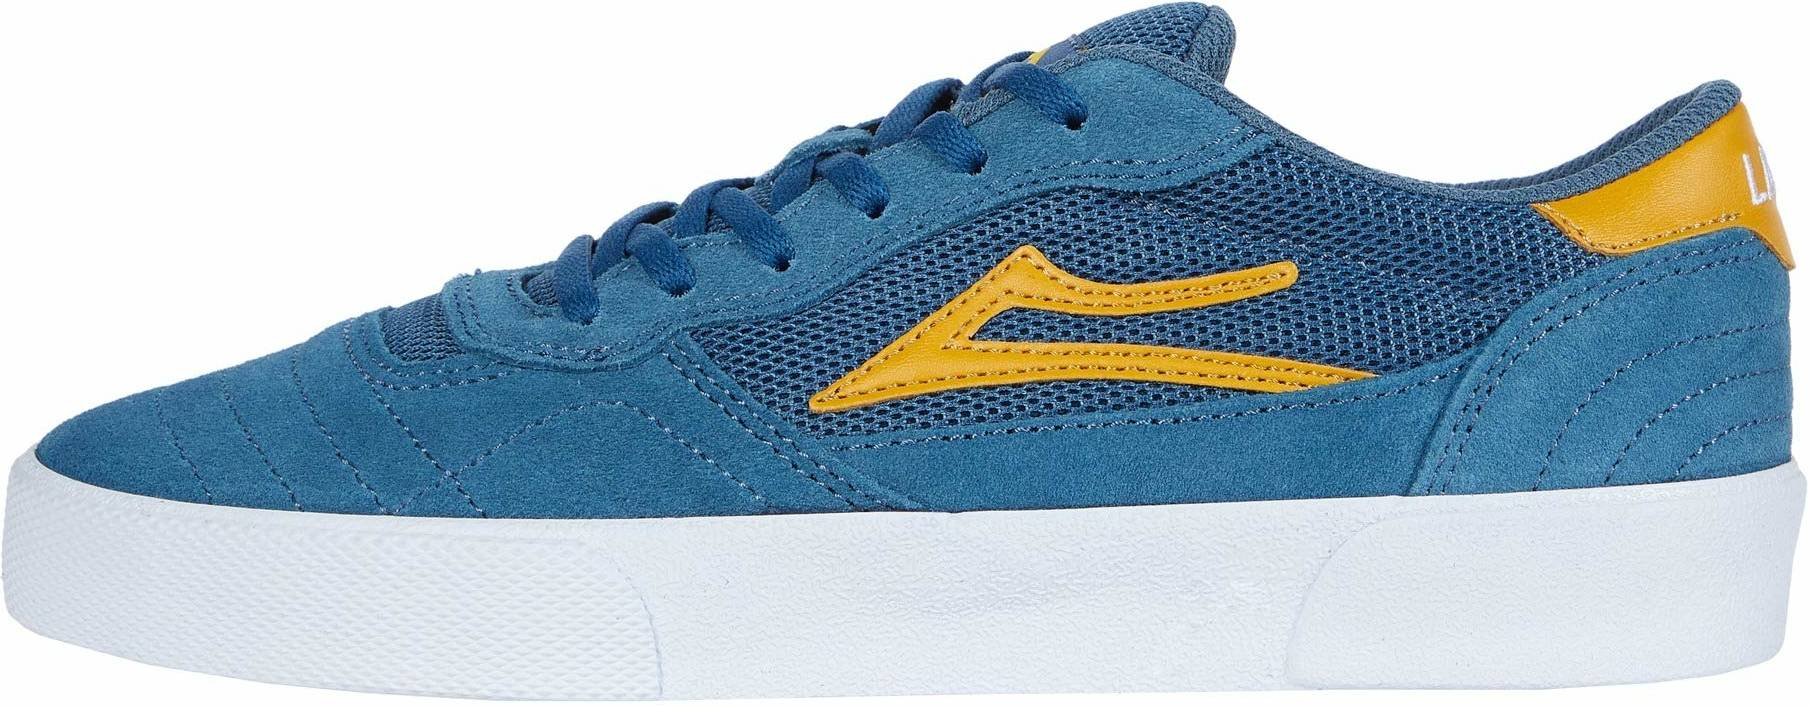 Only £45 + Review of Lakai Cambridge